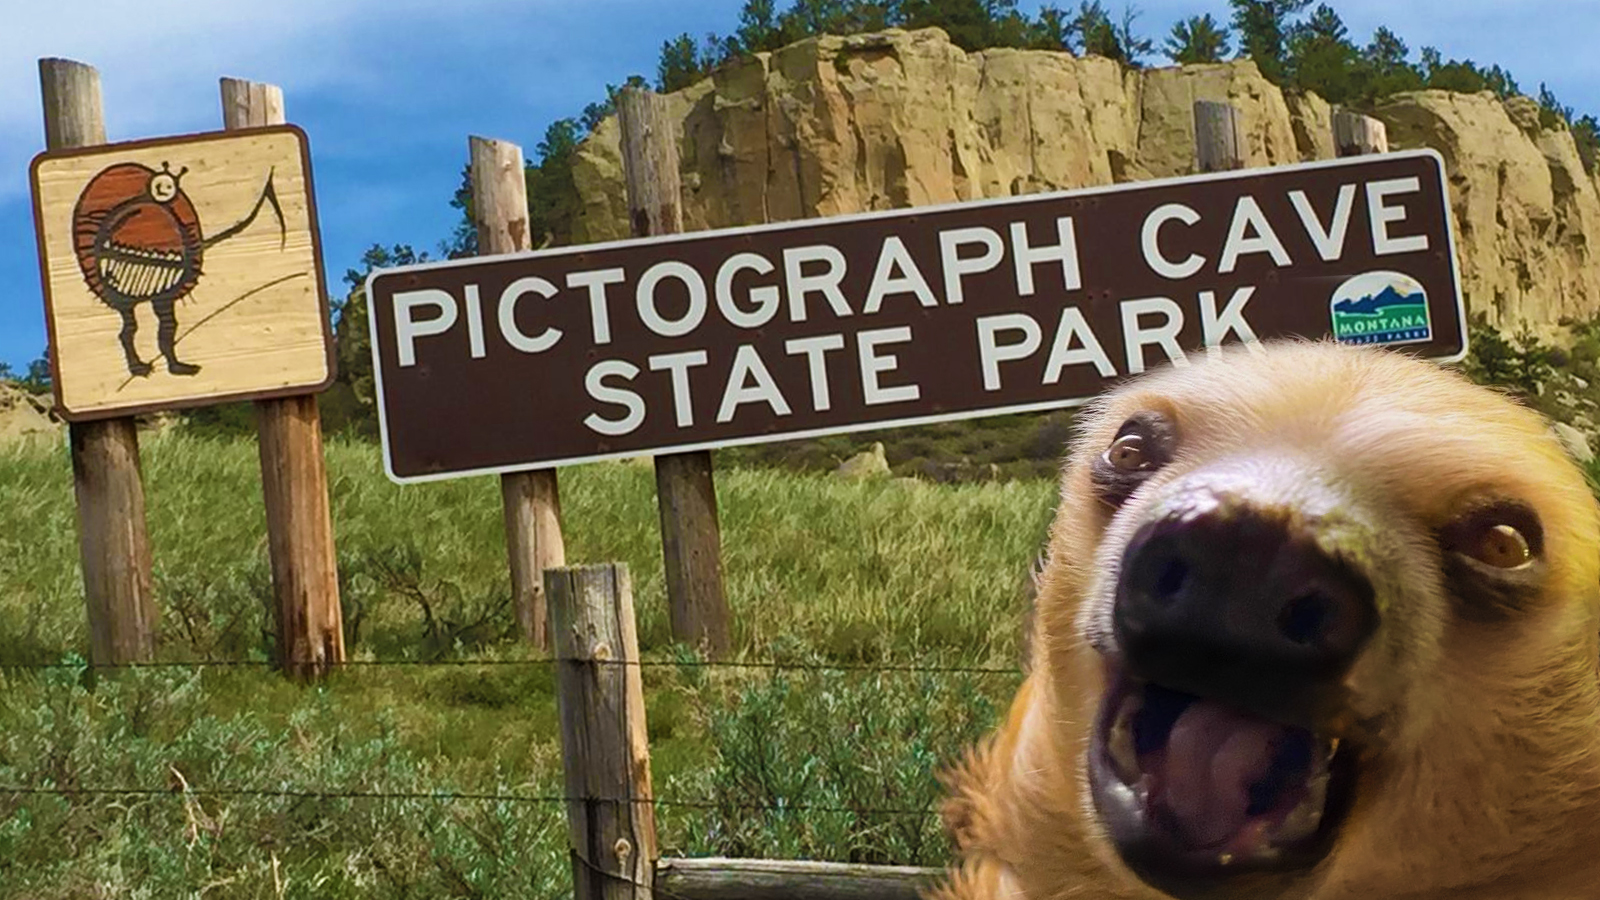 winston-the-sloth-image-state-park